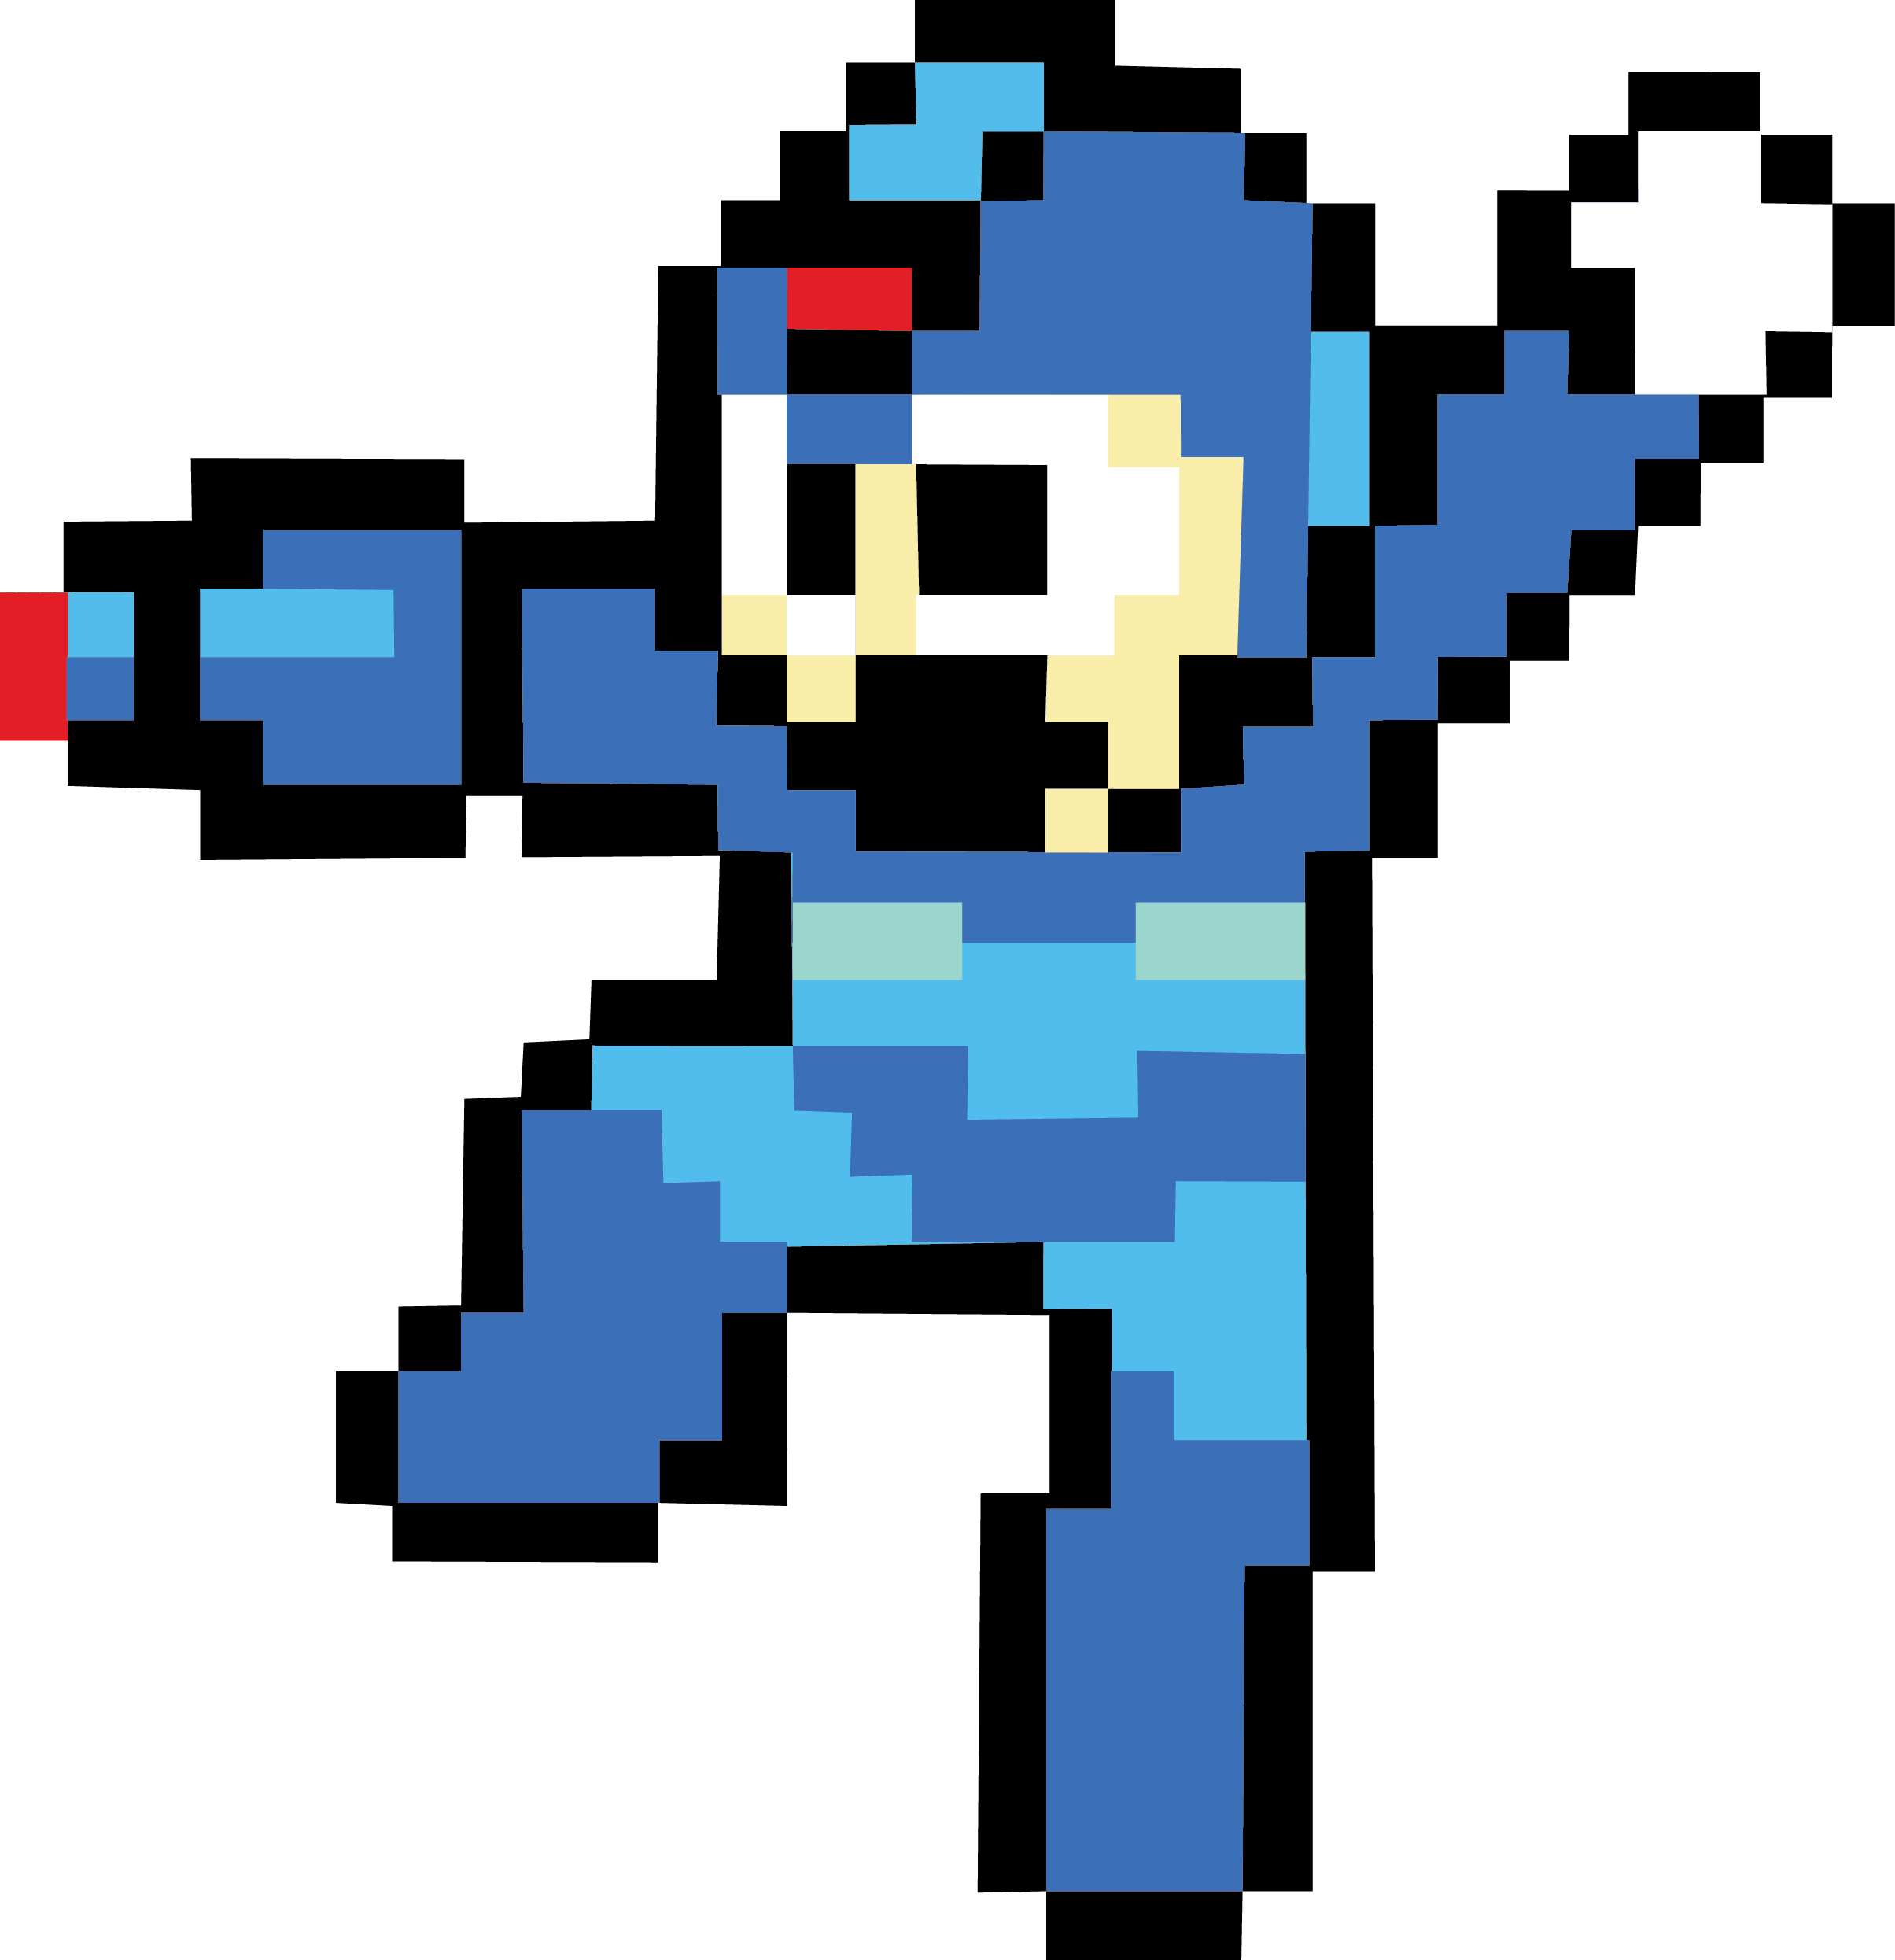 Game clipart 8 bit. Convert image to color